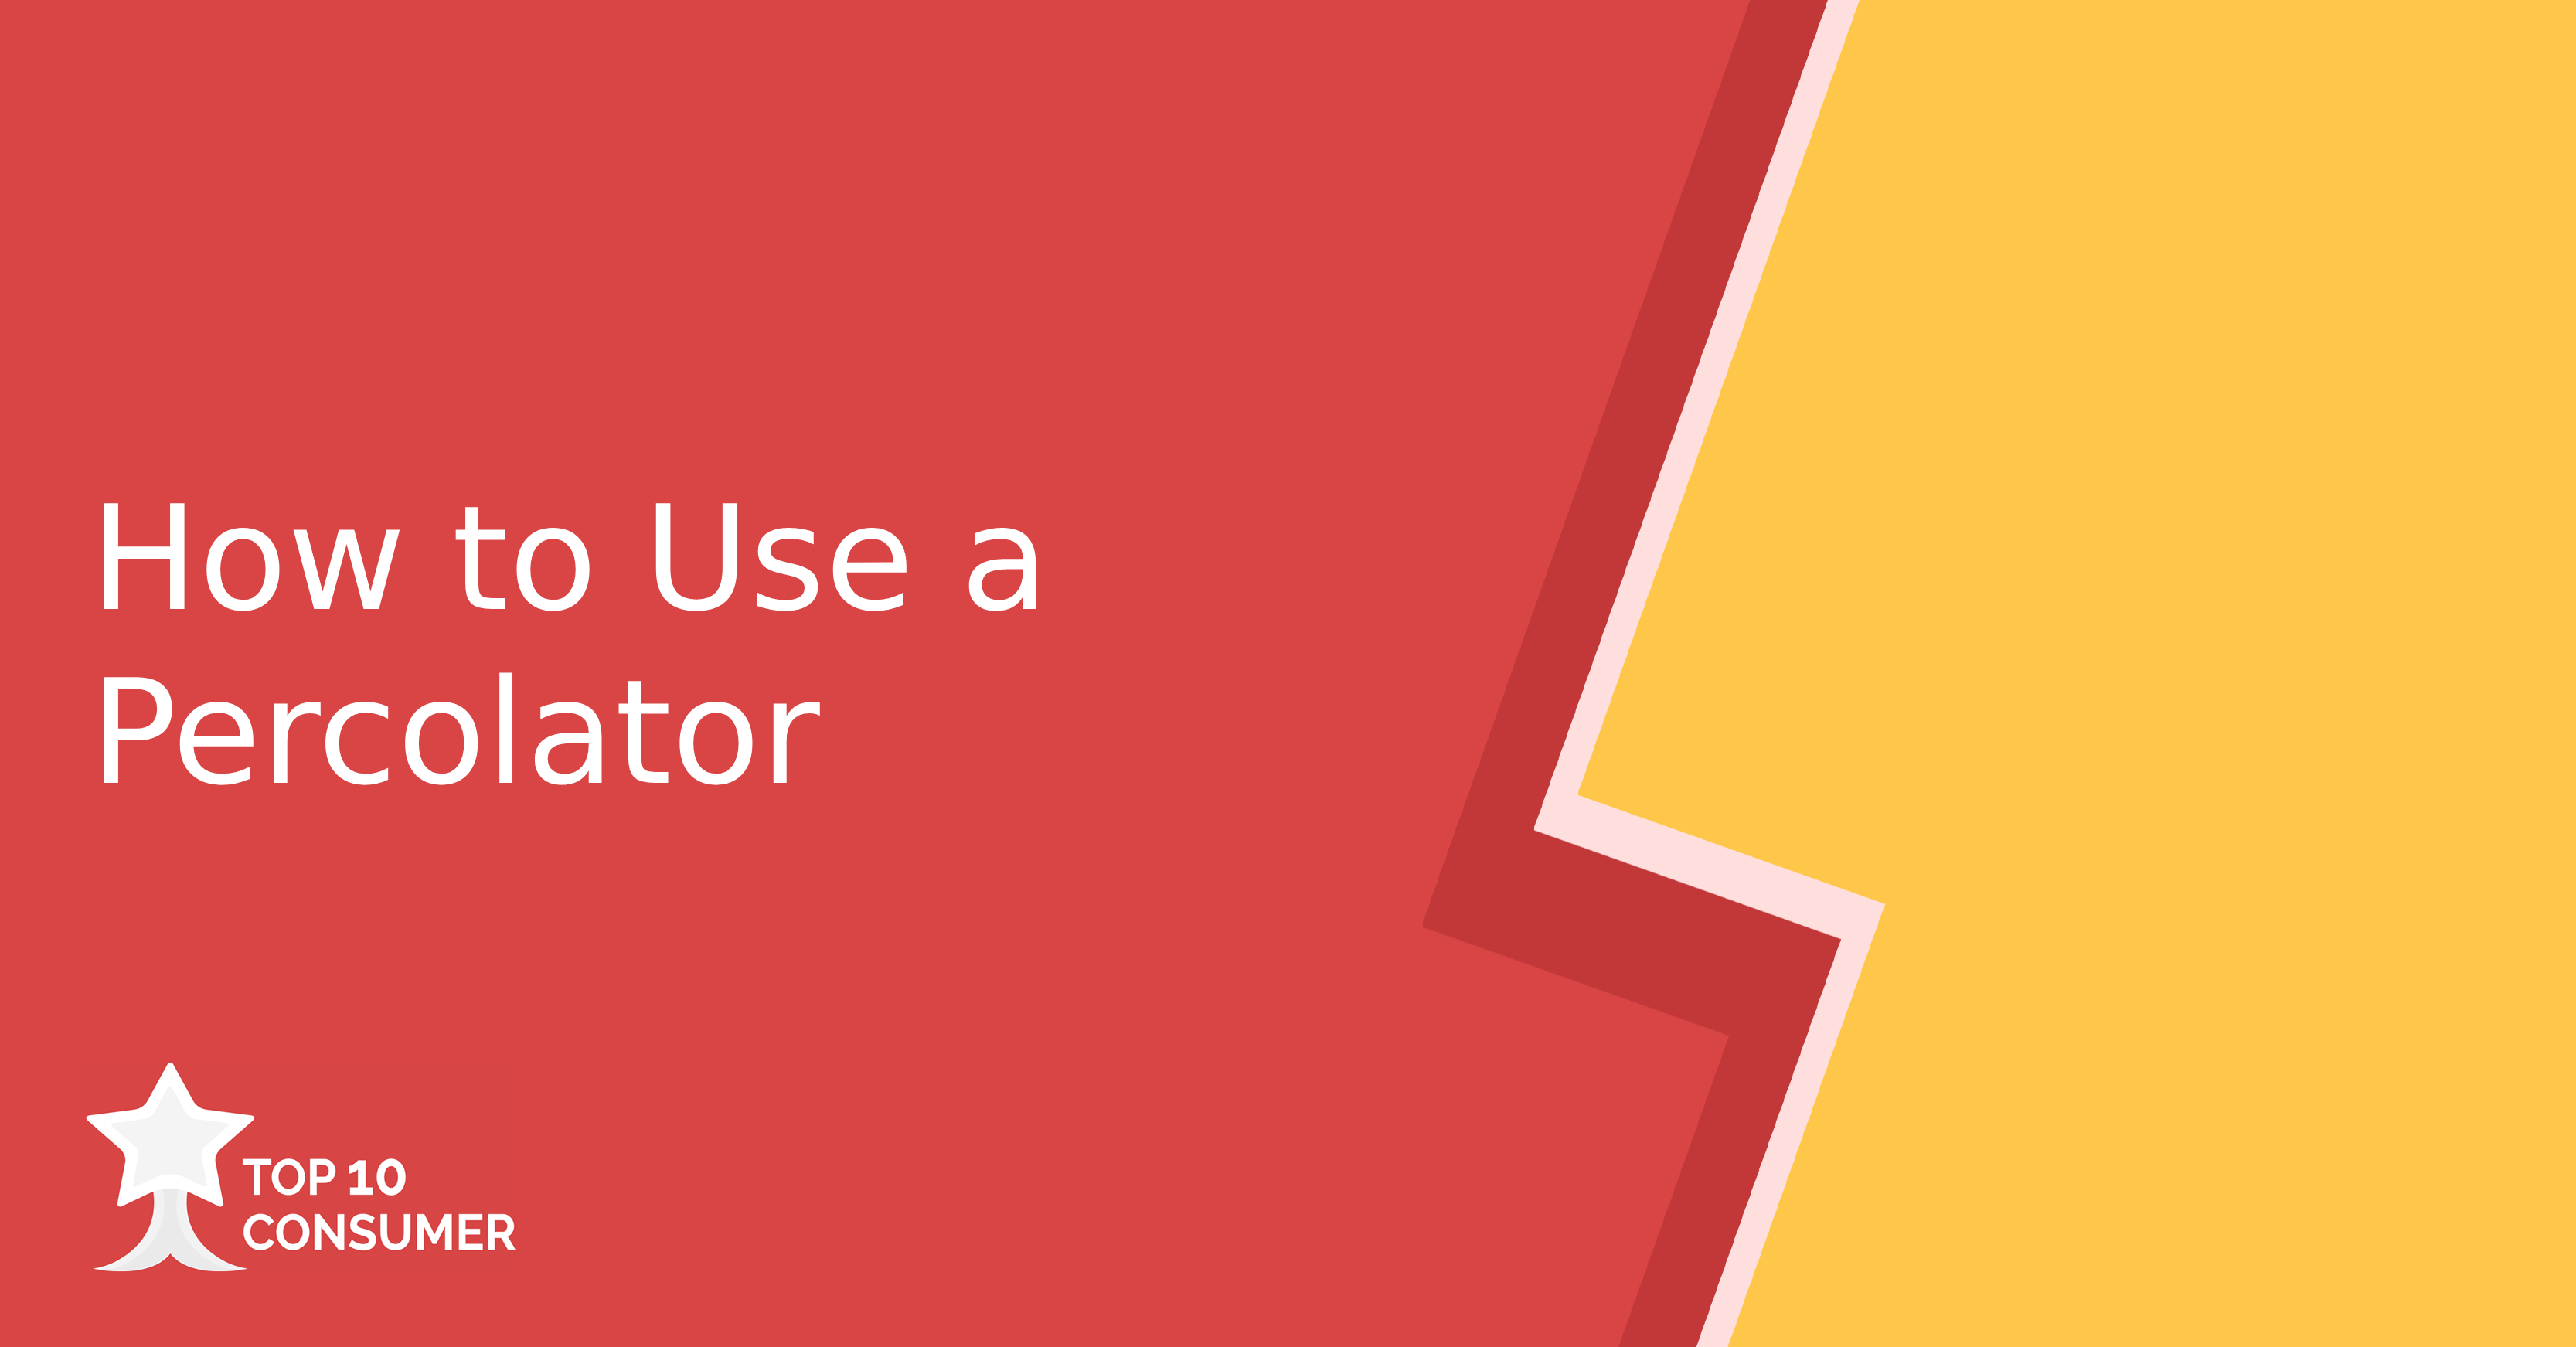 How to Use a Percolator